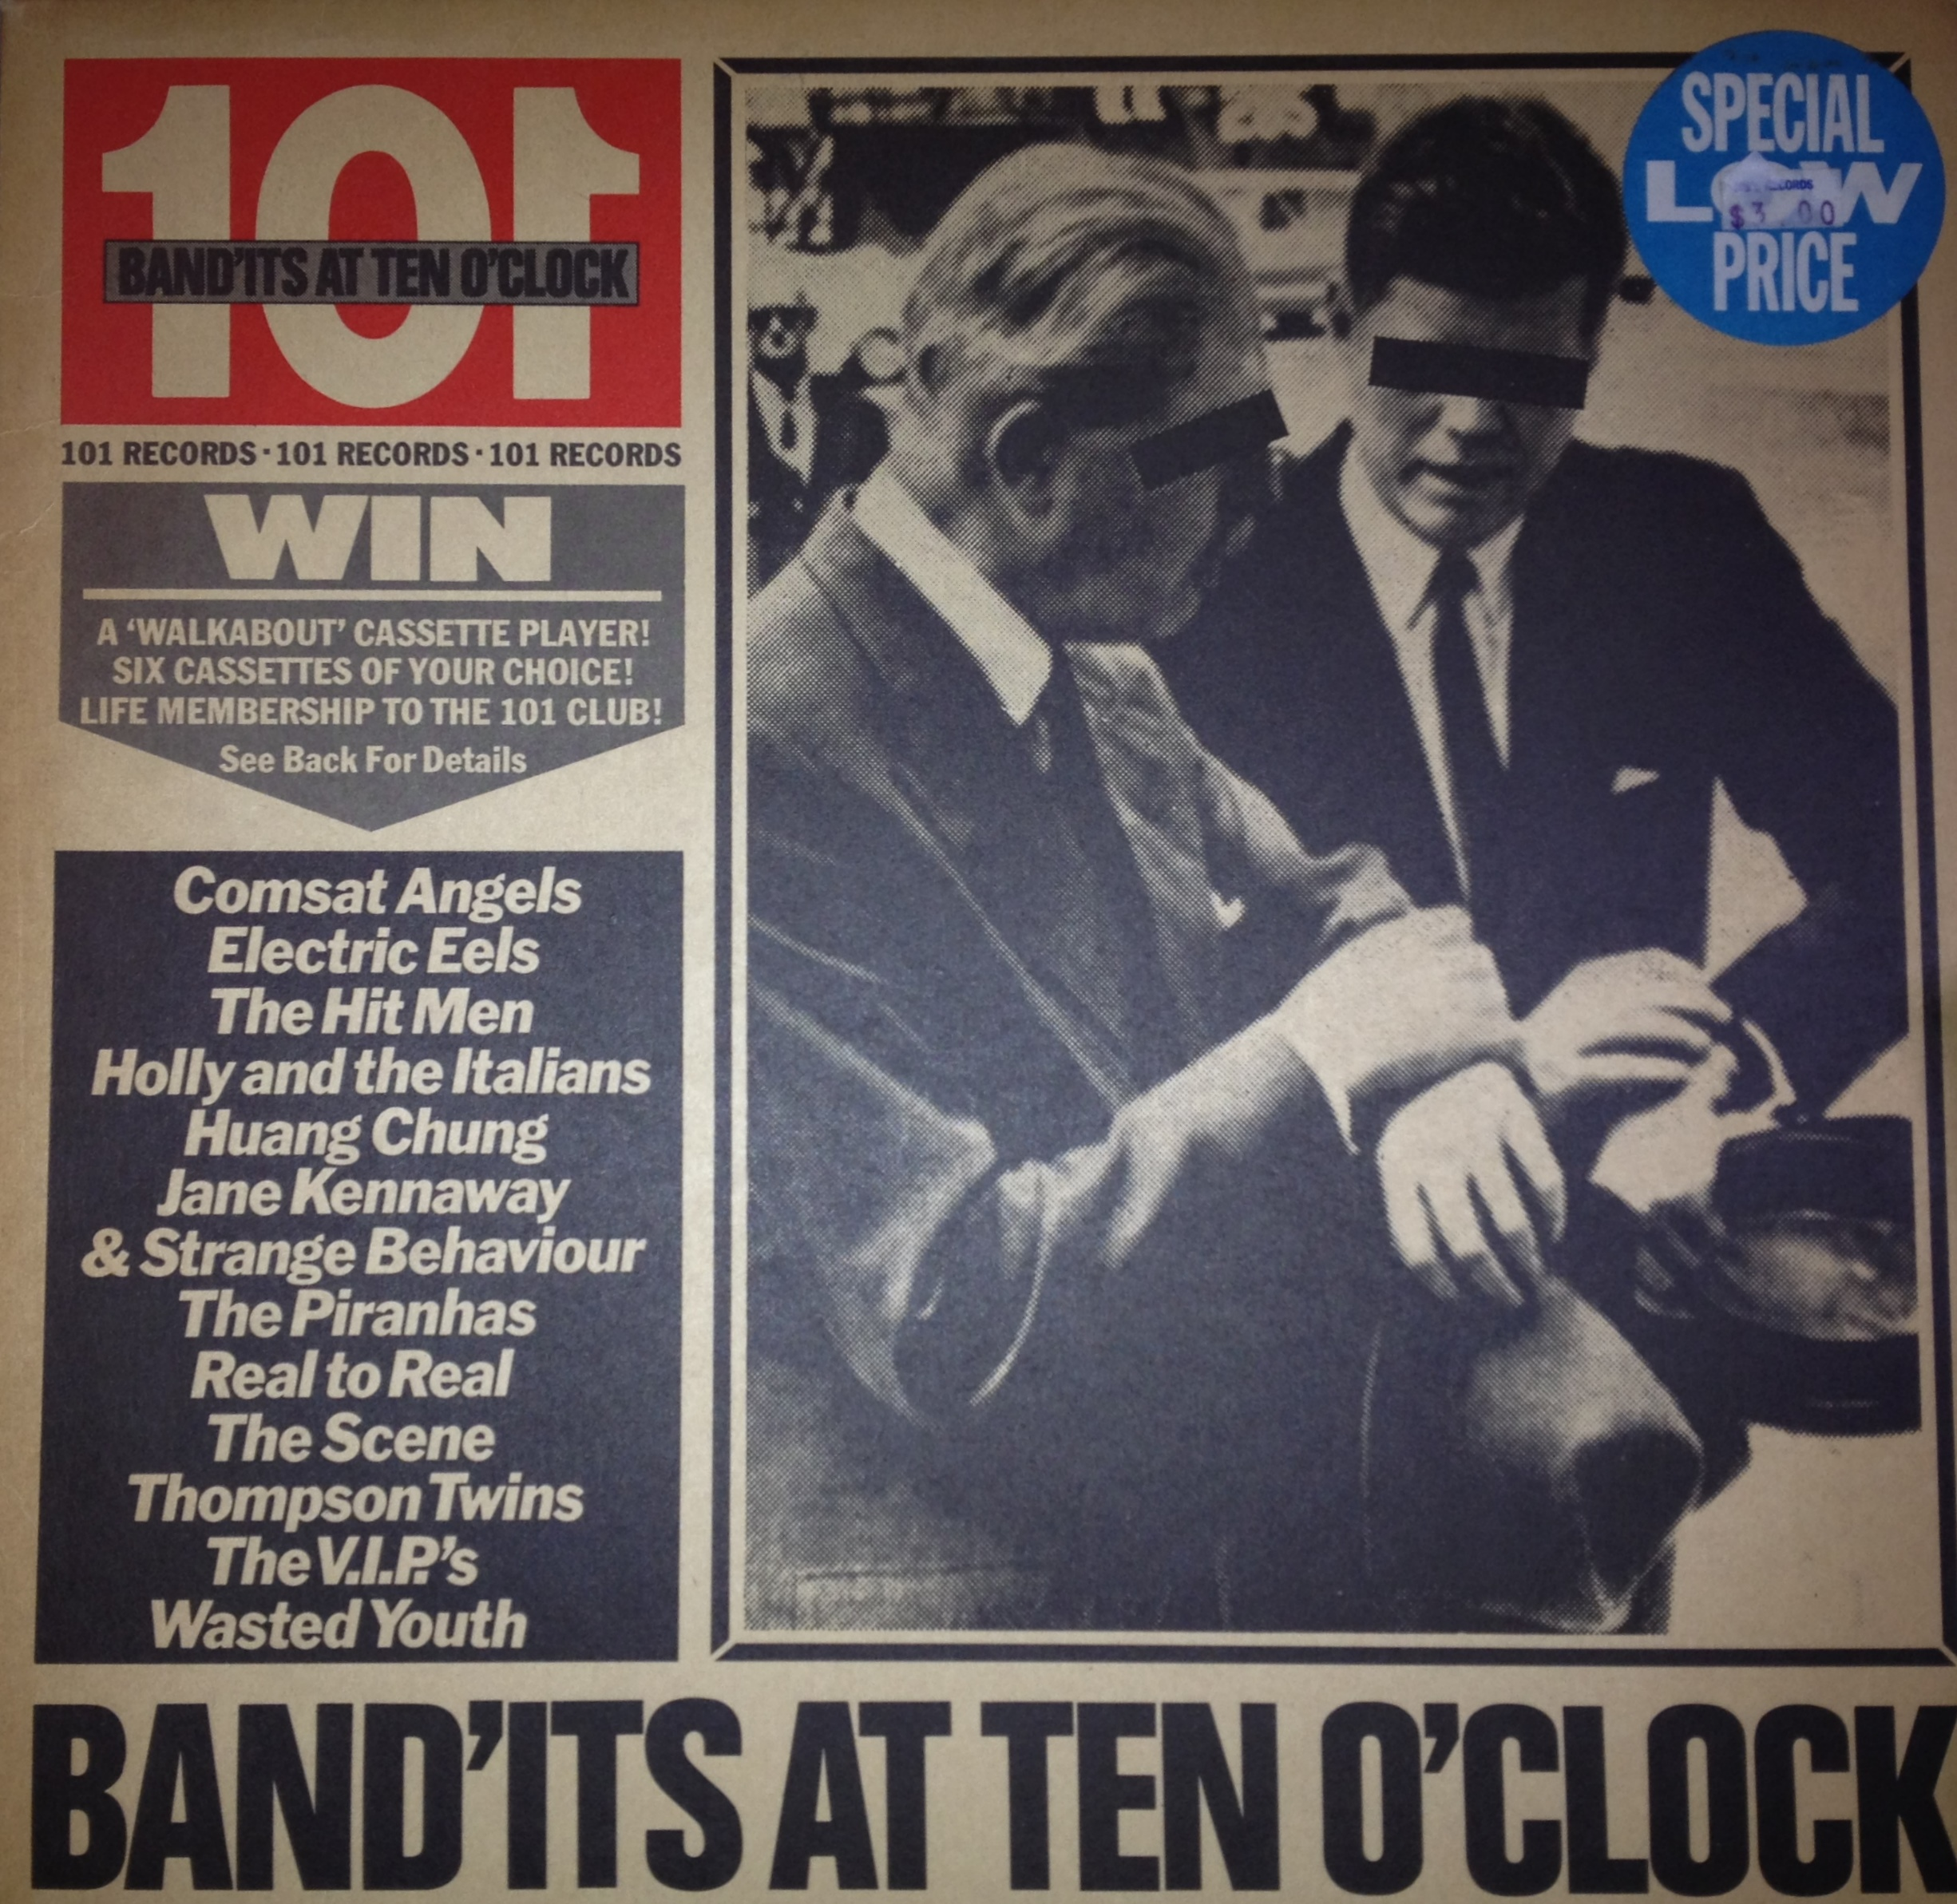 Bandits at ten oclock bands featured at the 101 club lost bandits at ten oclock bands featured at the 101 club solutioingenieria Image collections